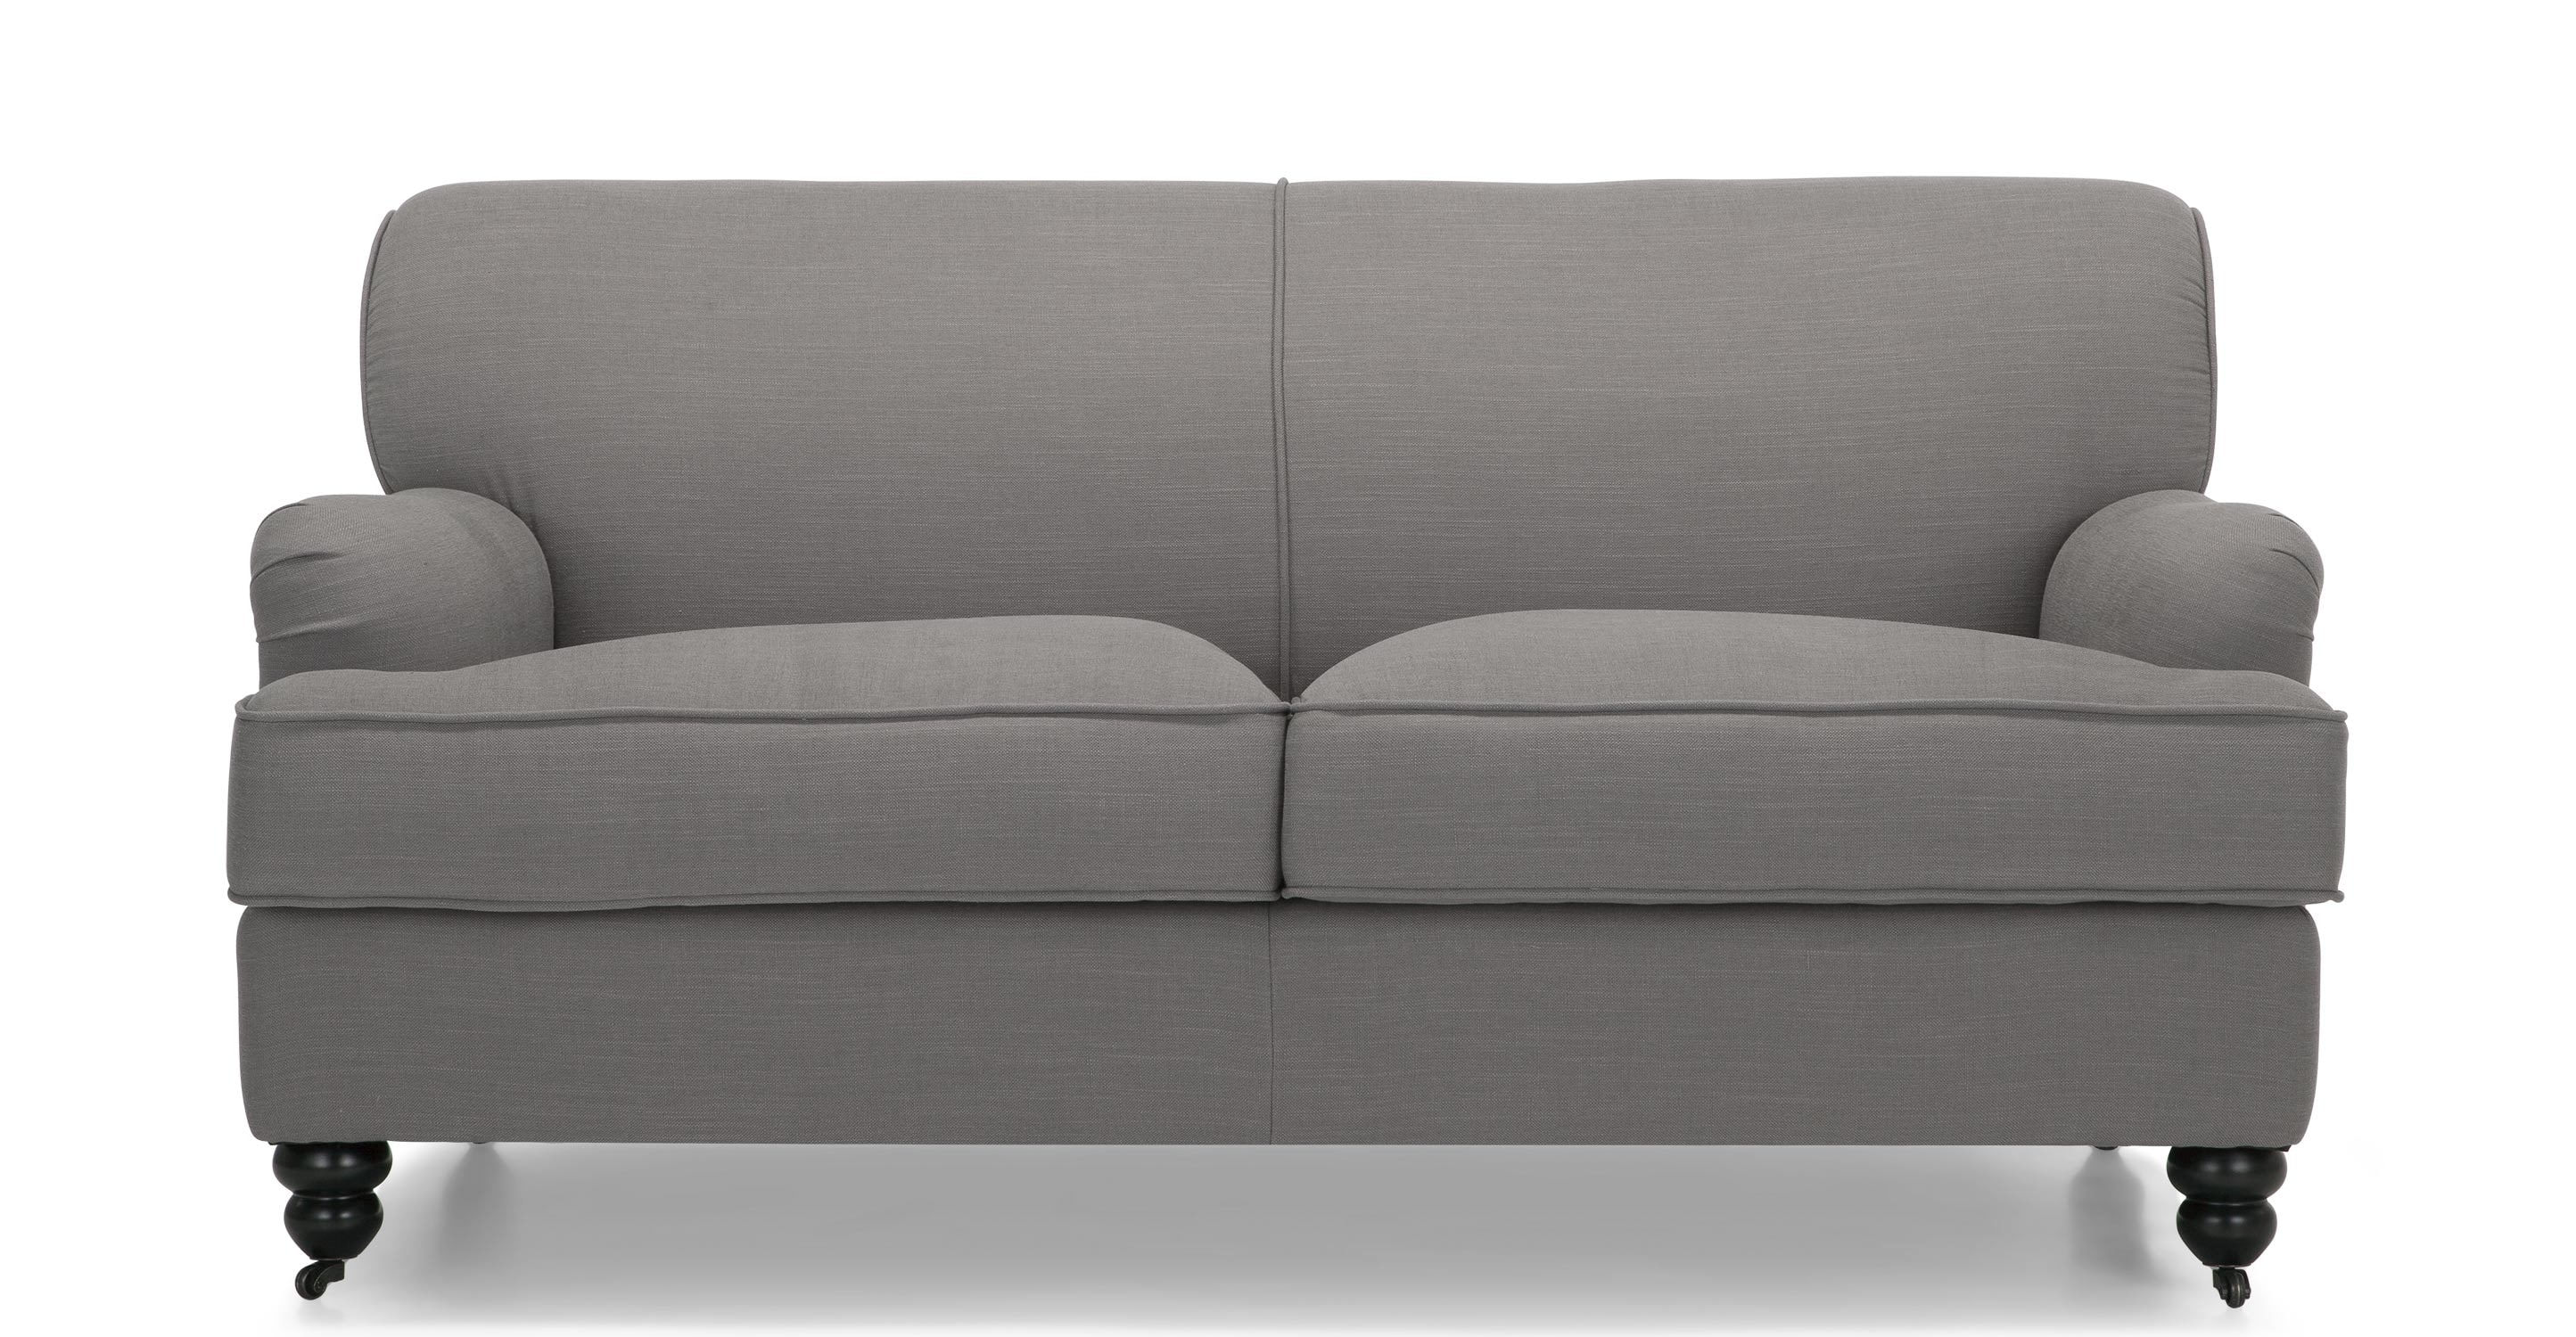 Sofas Center Small Seater Sofa Throughout Small 2 Seater Sofas (Image 11 of 15)